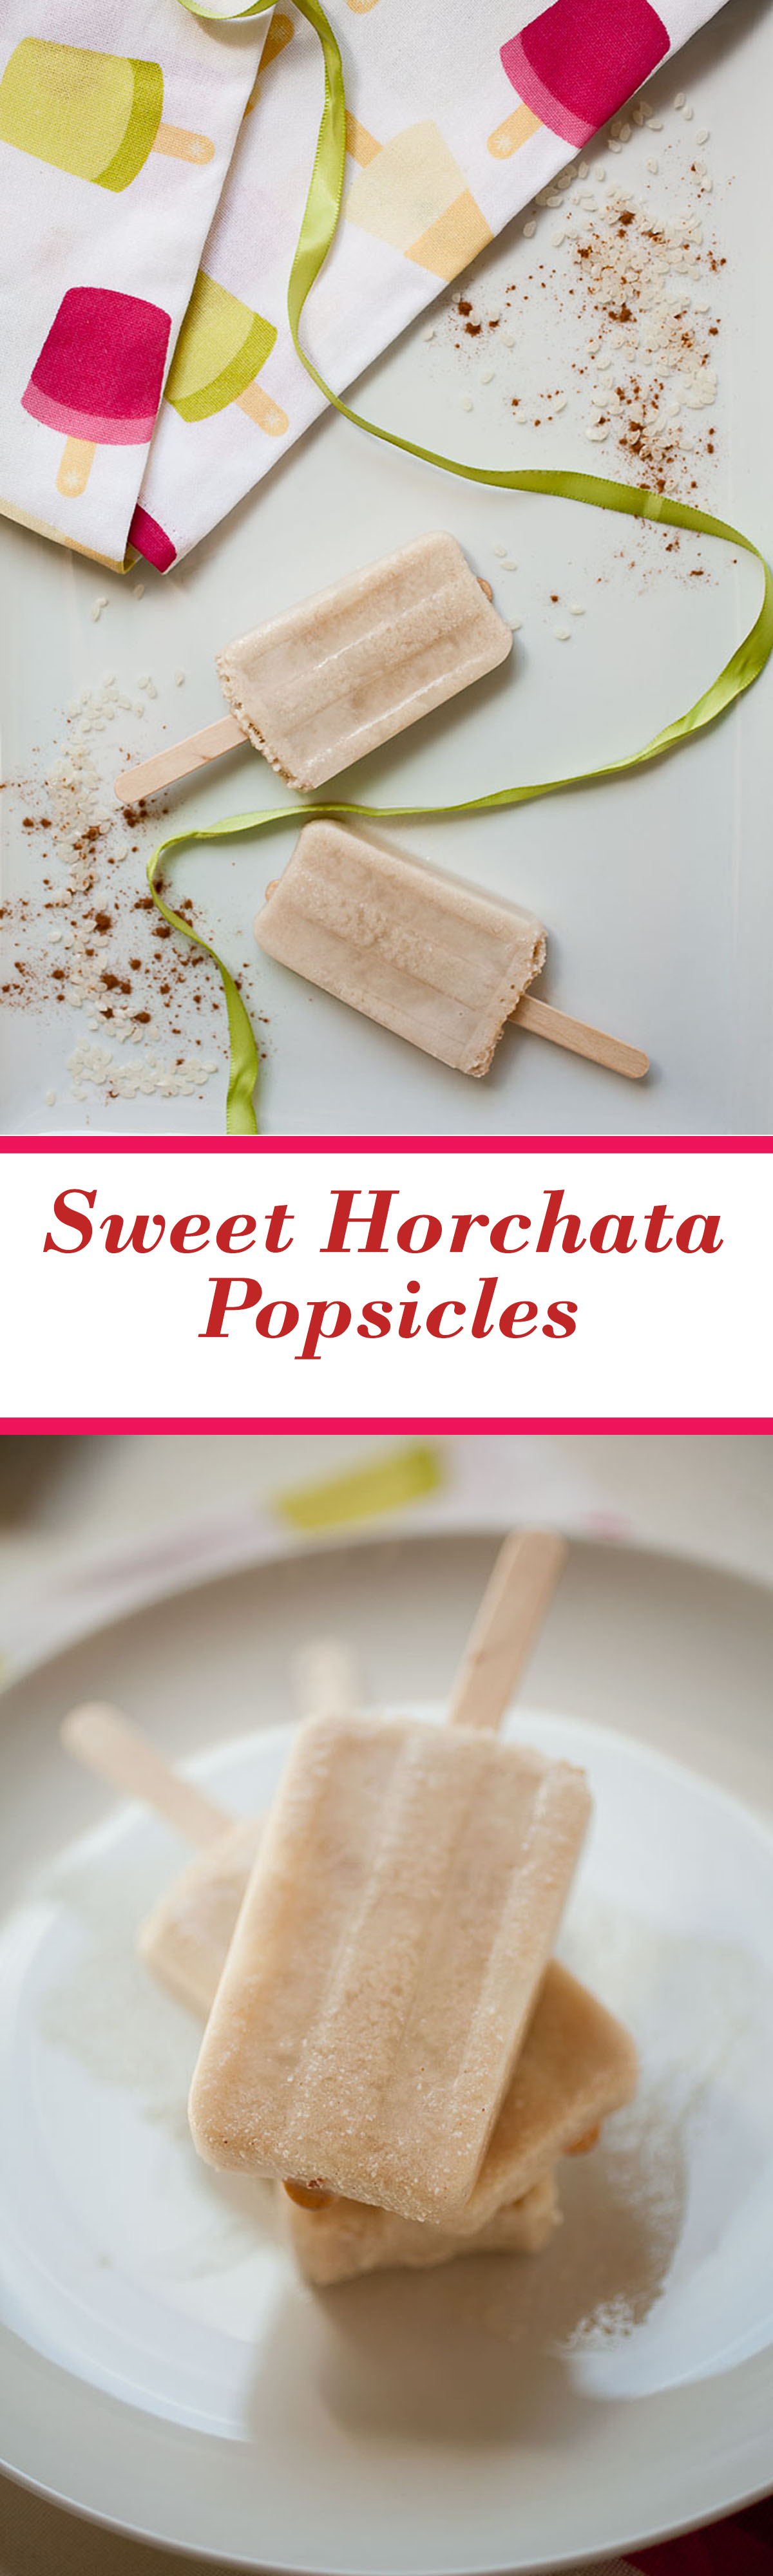 These sweet, creamy homemade horchata Popsicles are a perfect summer treat!